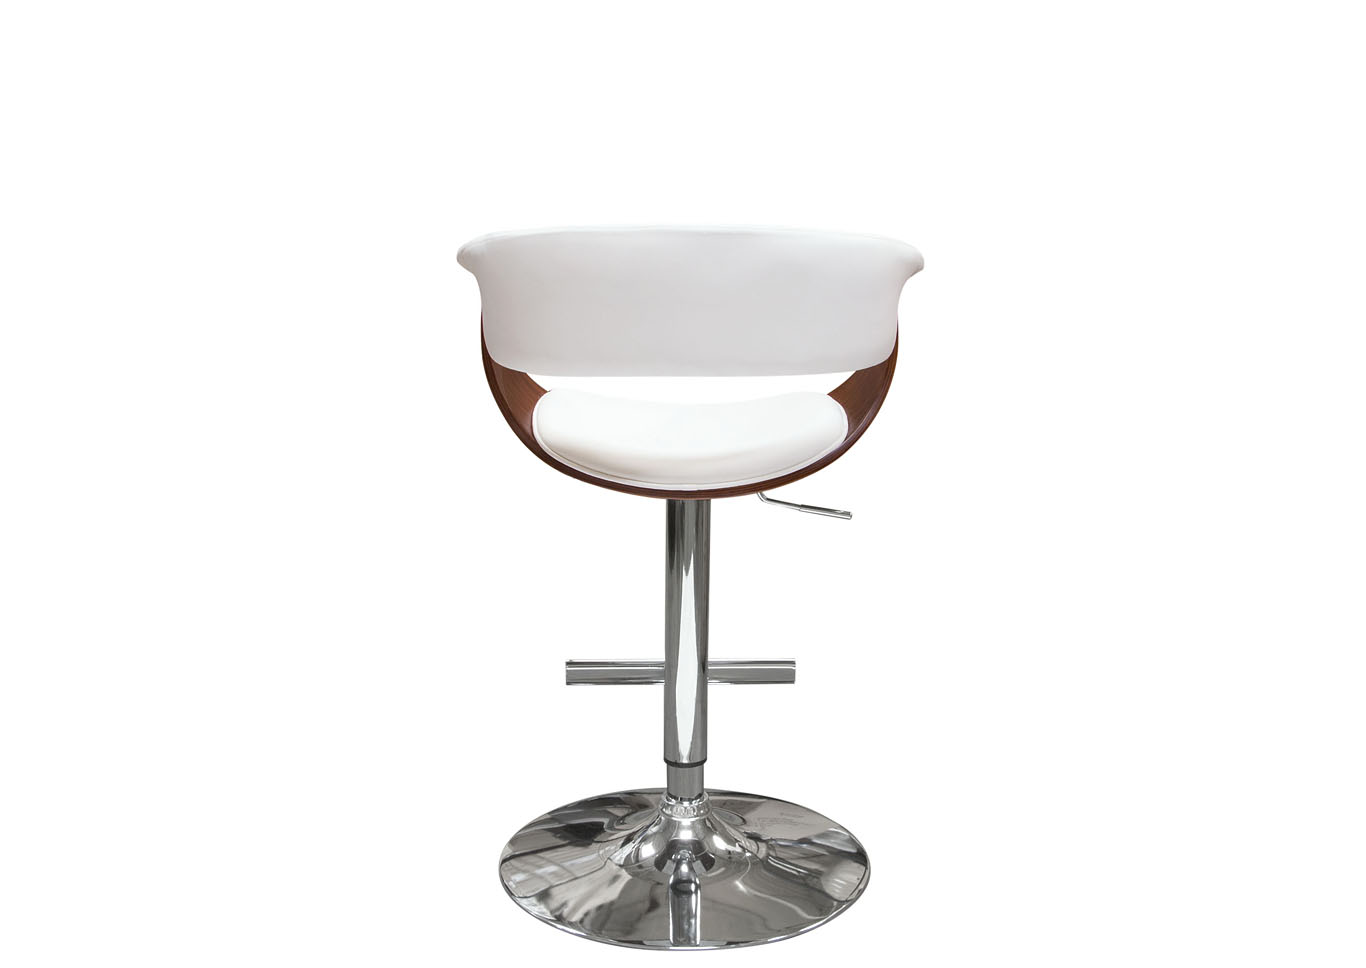 Cove White Hydraulic Adjustable Height Stool w/Molded Bamboo Seat and Polished Metal Base,Diamond Sofa